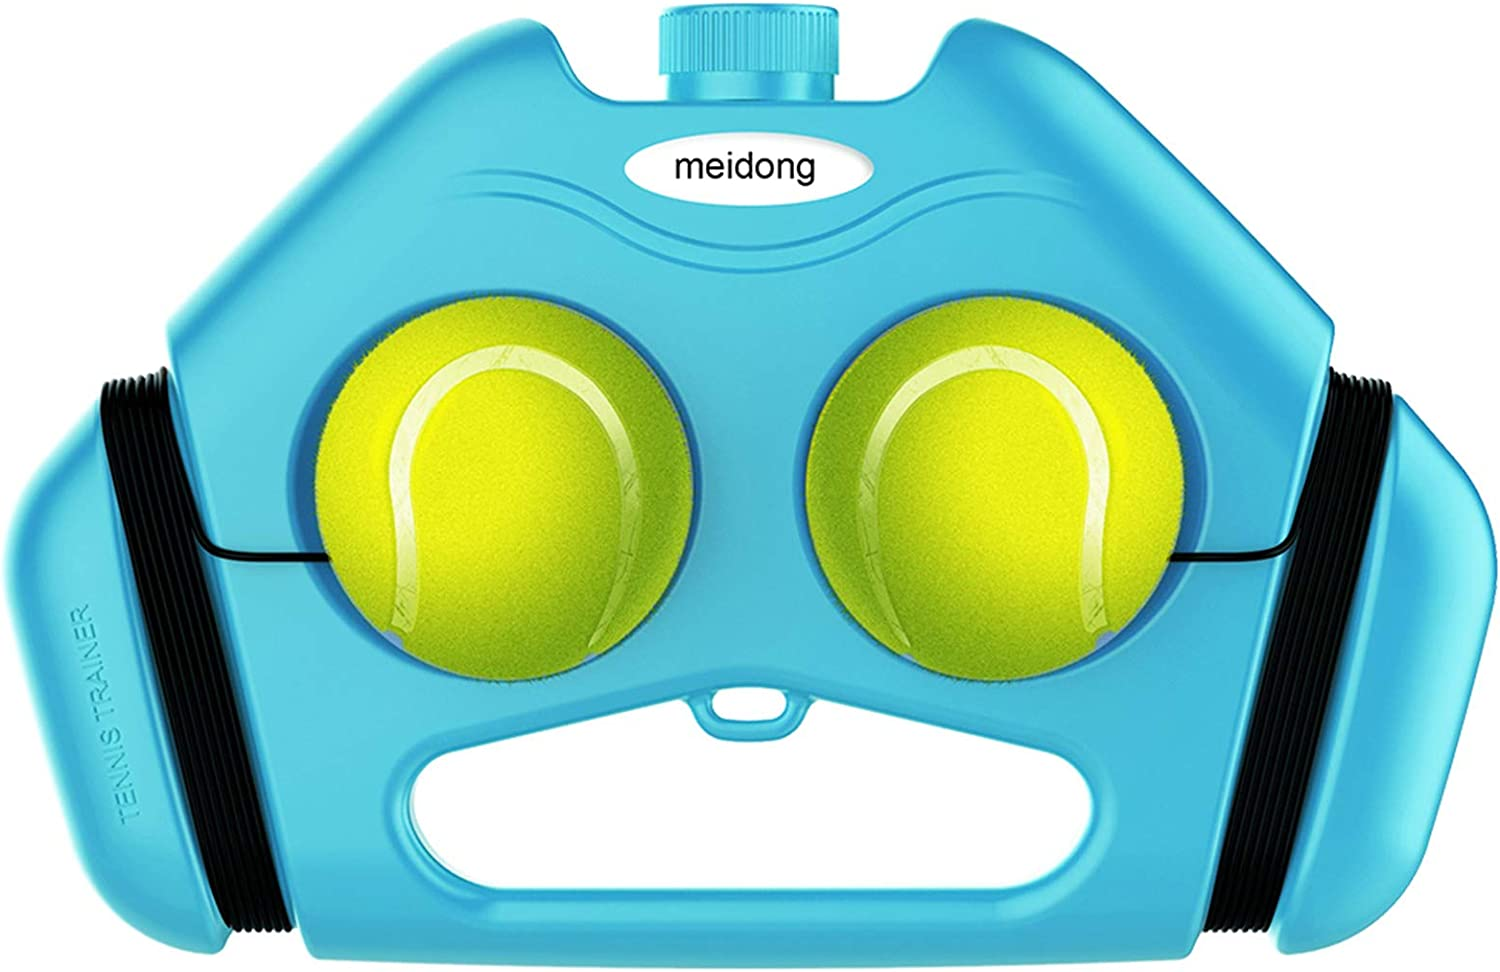 meidong Tennis Trainer 2 Rebound Balls Anti-Tangle Cord Anti-Slide Baseboard Springen Tennis Trainer Tennis Rebounder Tennis Self Training Tool (Blue) : Sports & Outdoors